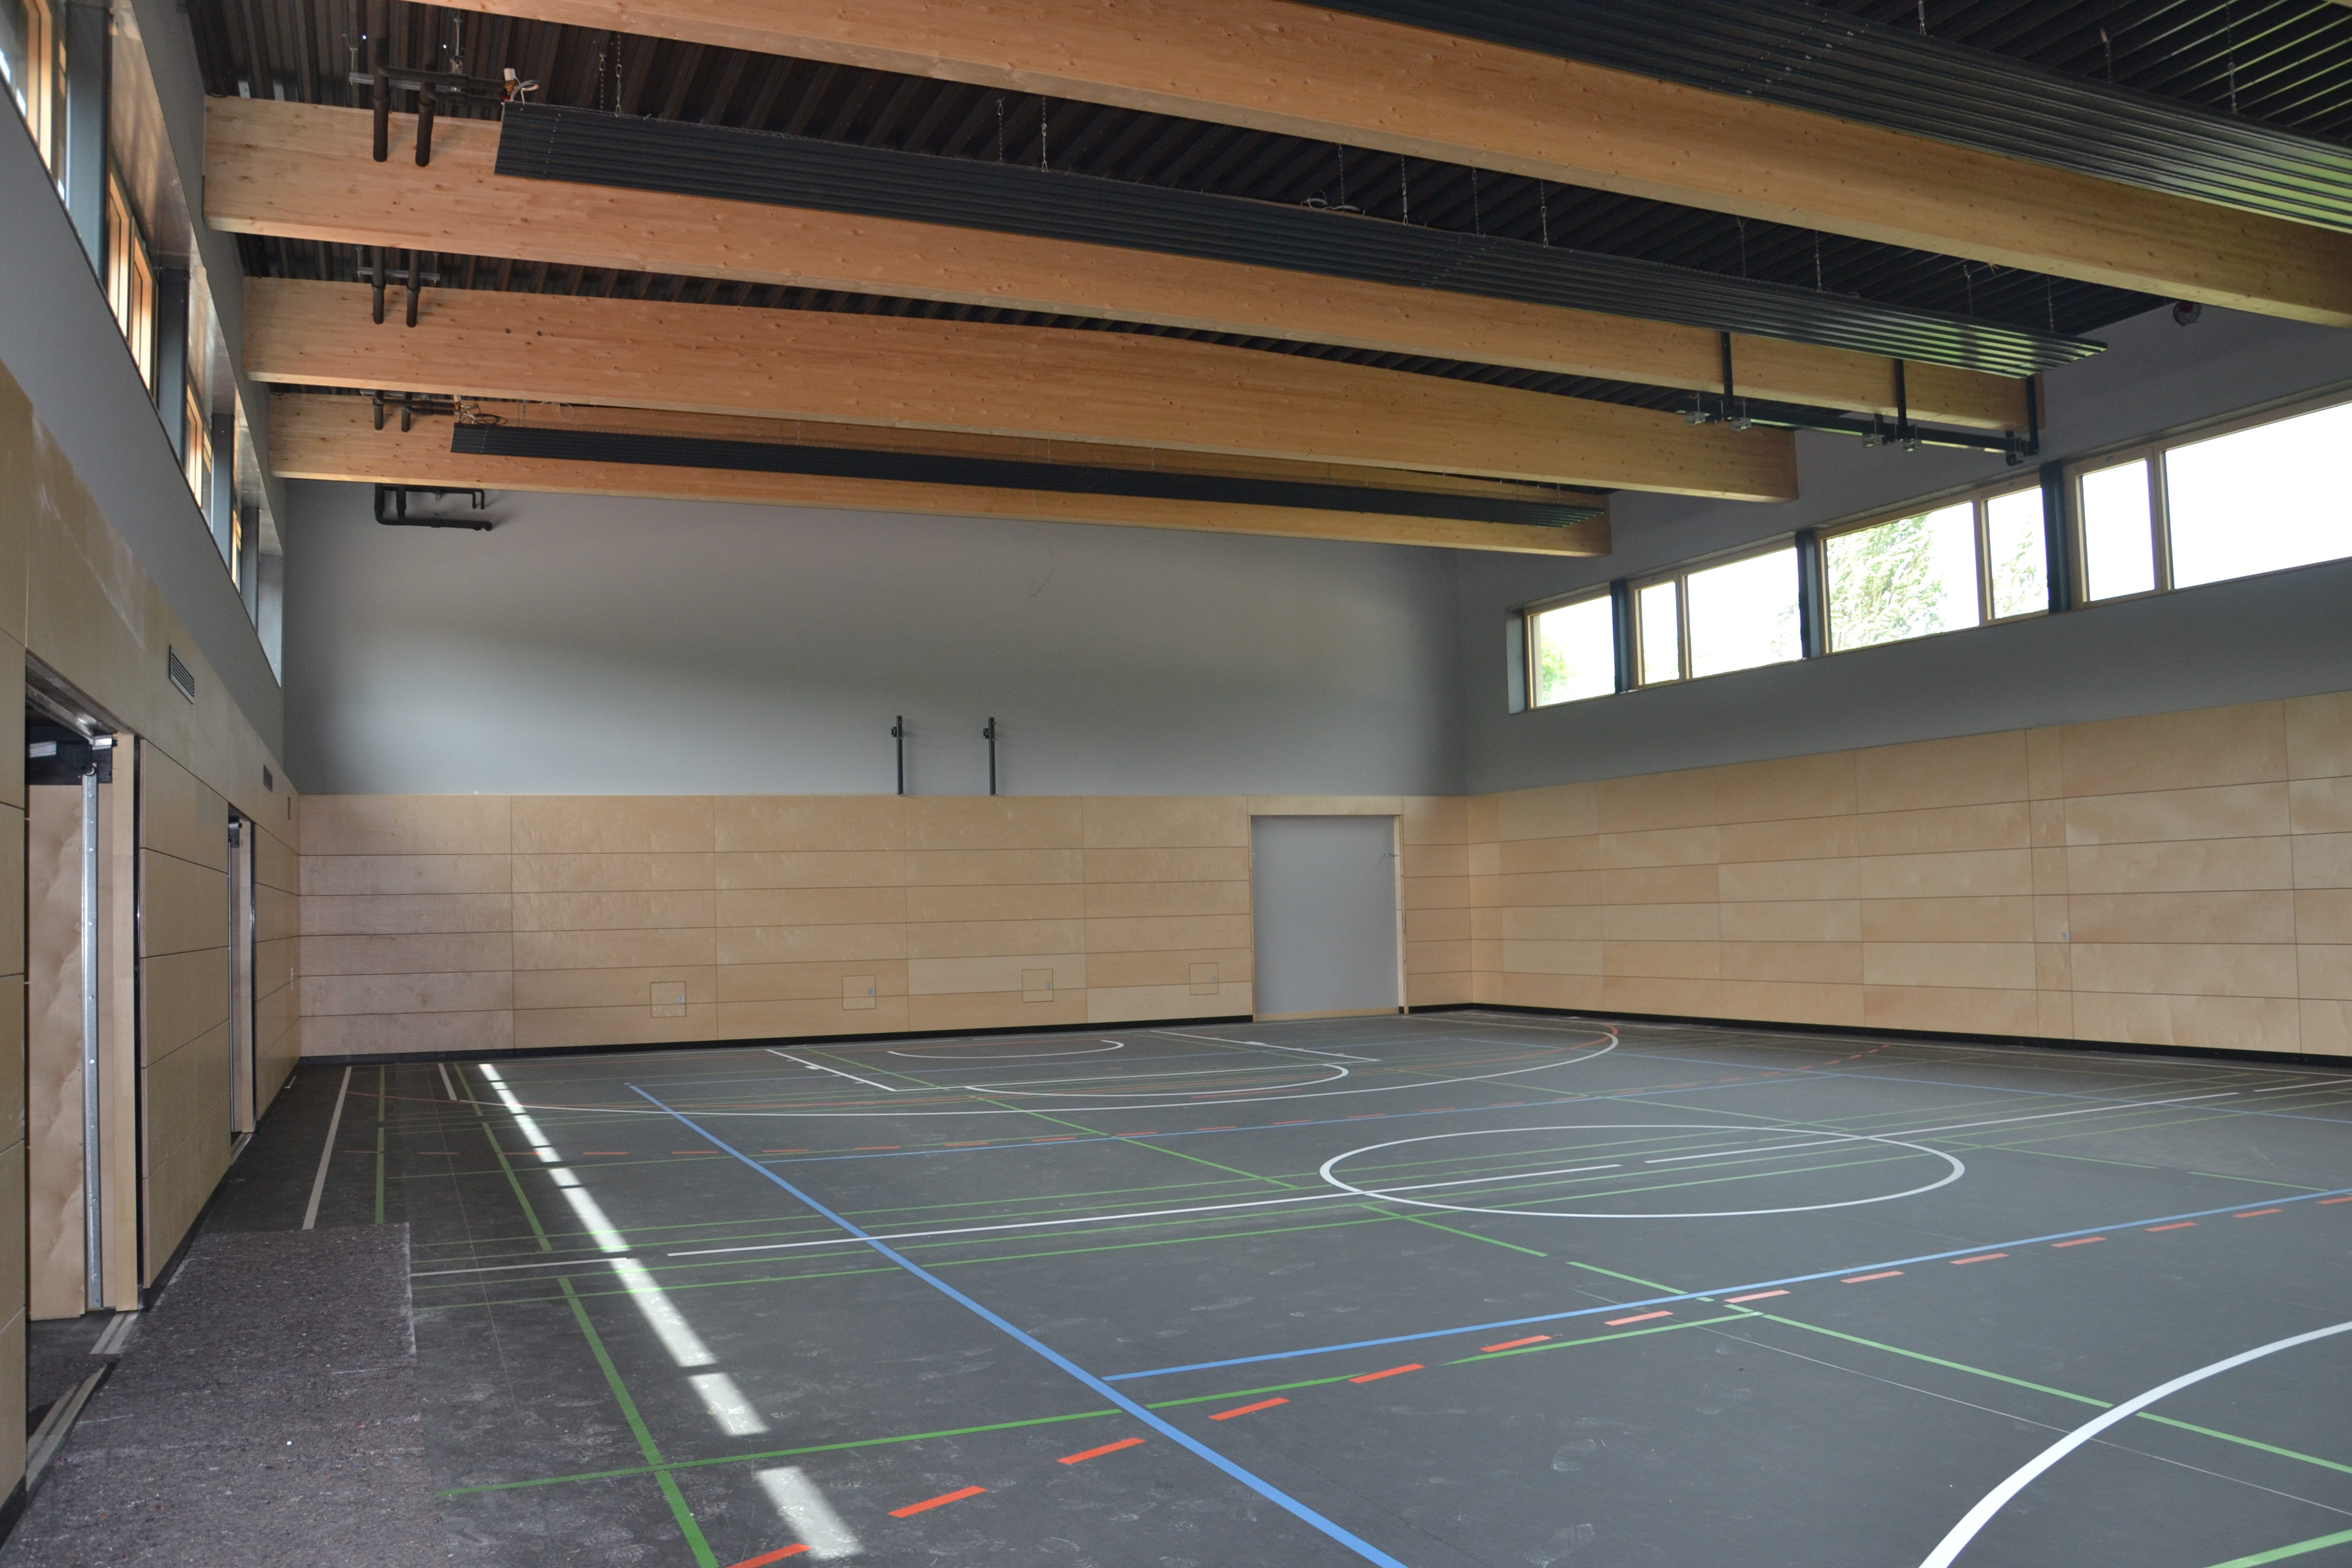 The new SIS Regensburg gymnasium